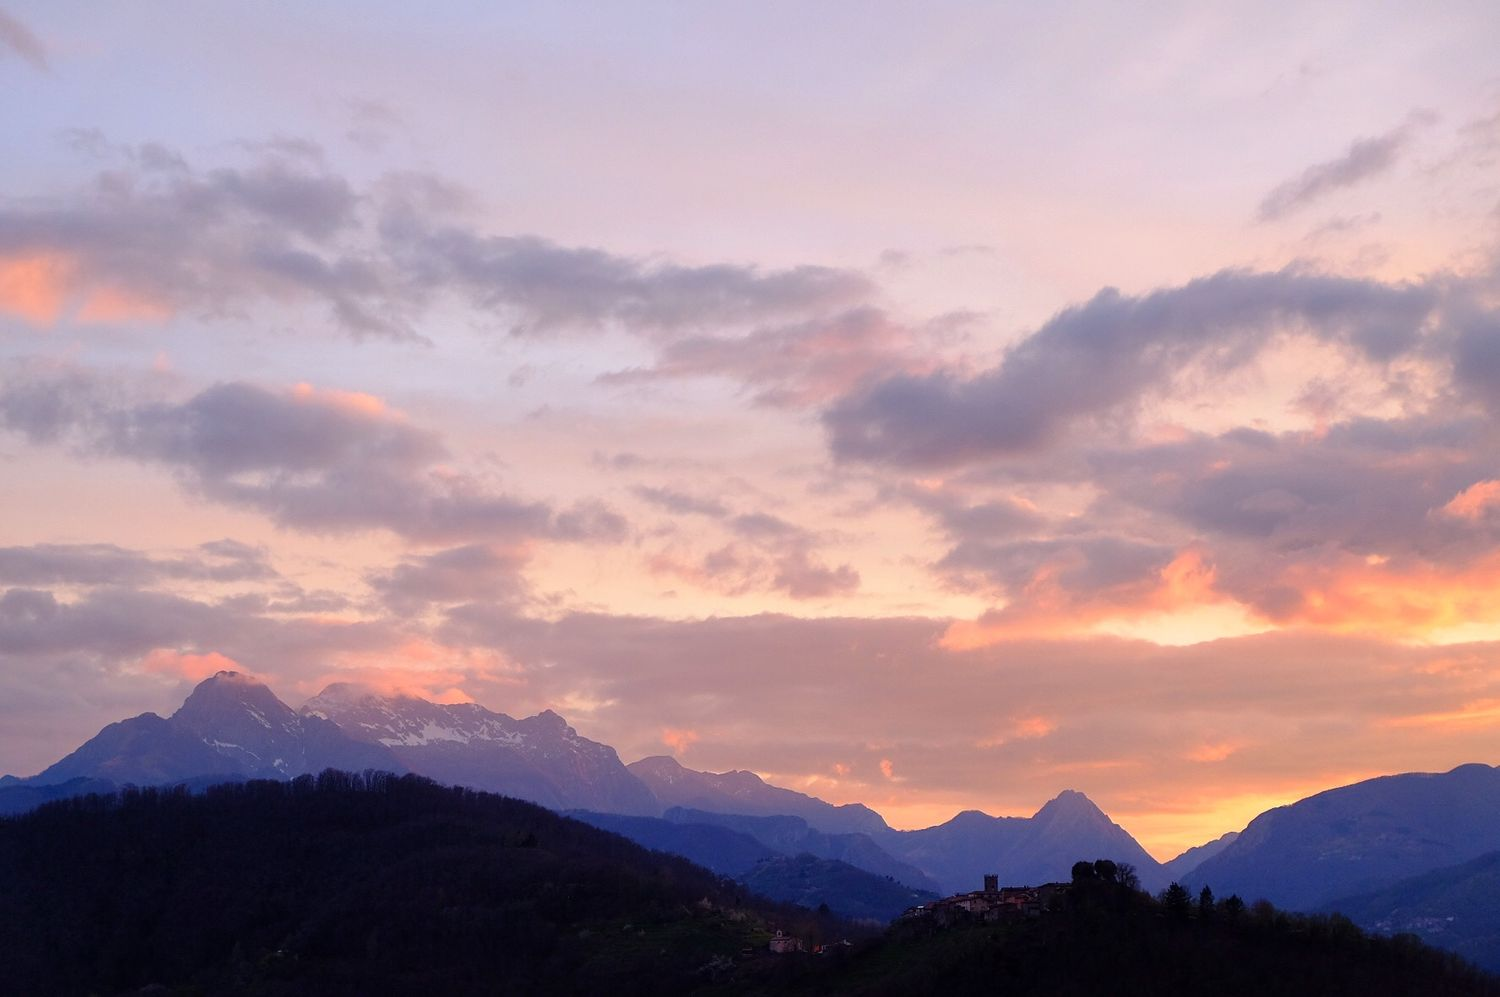 sunset over the Apuan Alps